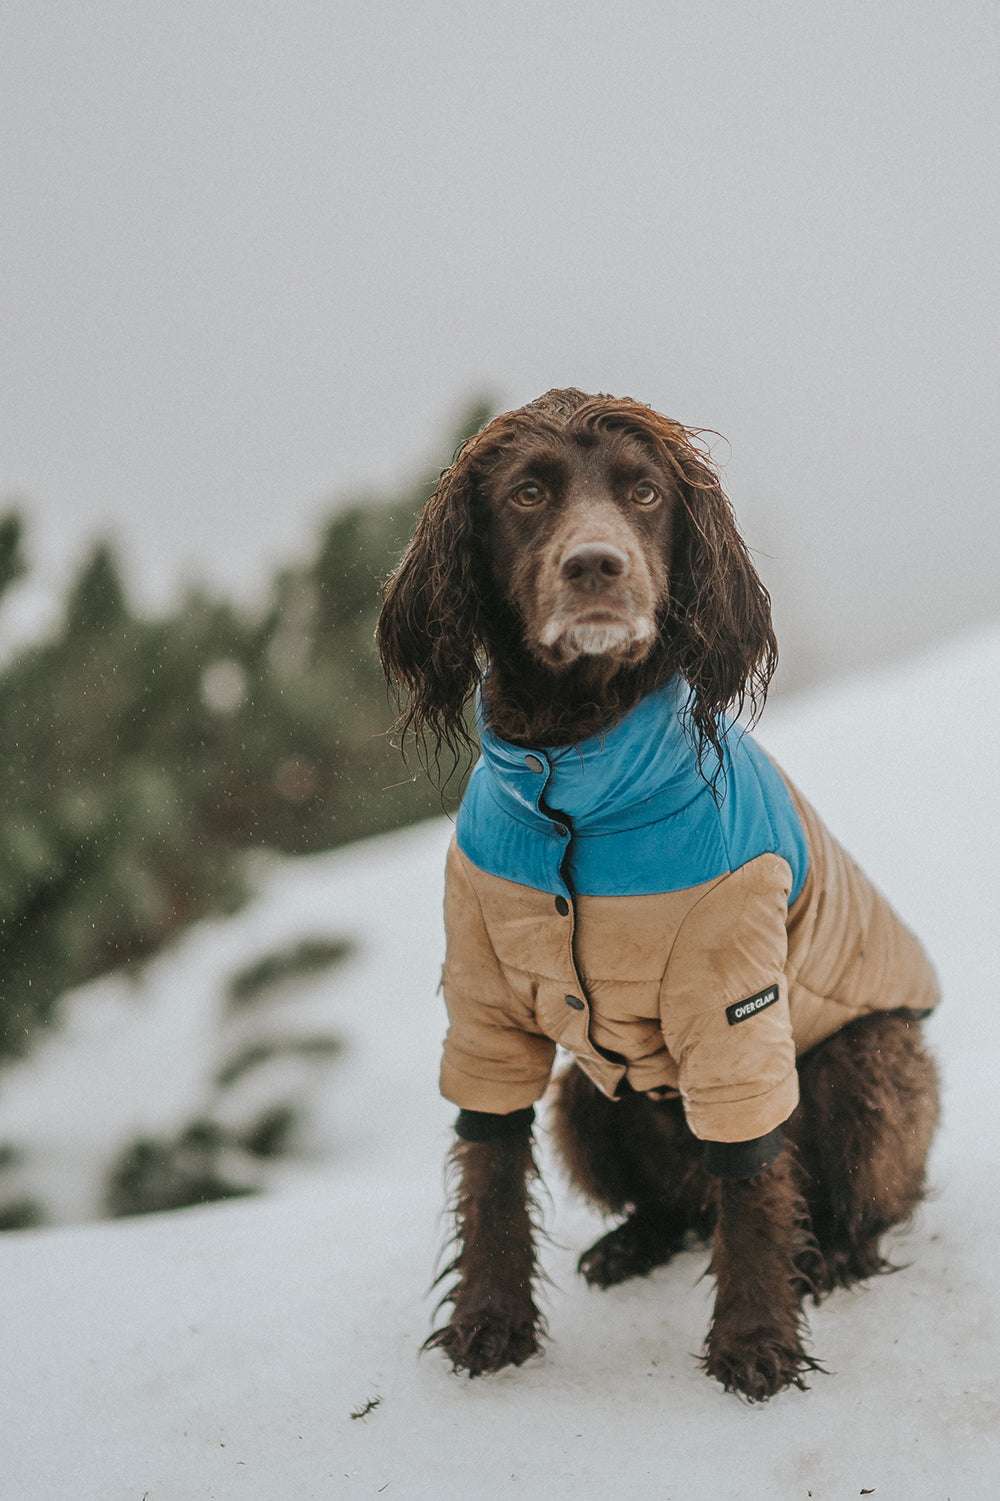 A dog in the snow wearing a ski jacket